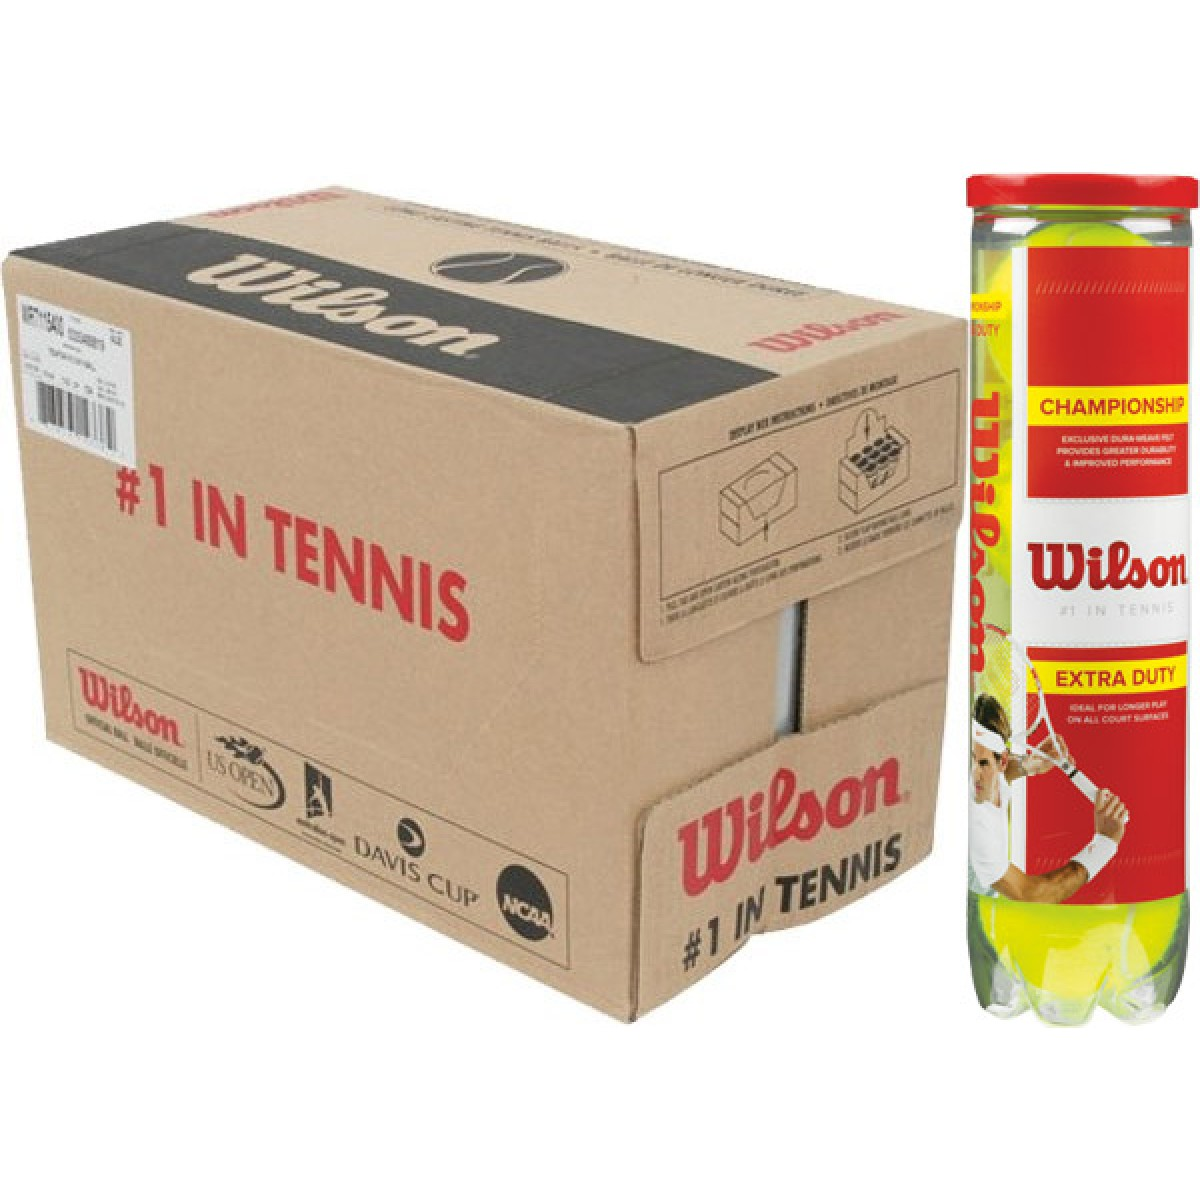 CASE OF 18 CANS OF 4 WILSON CHAMPIONSHIP BALLS